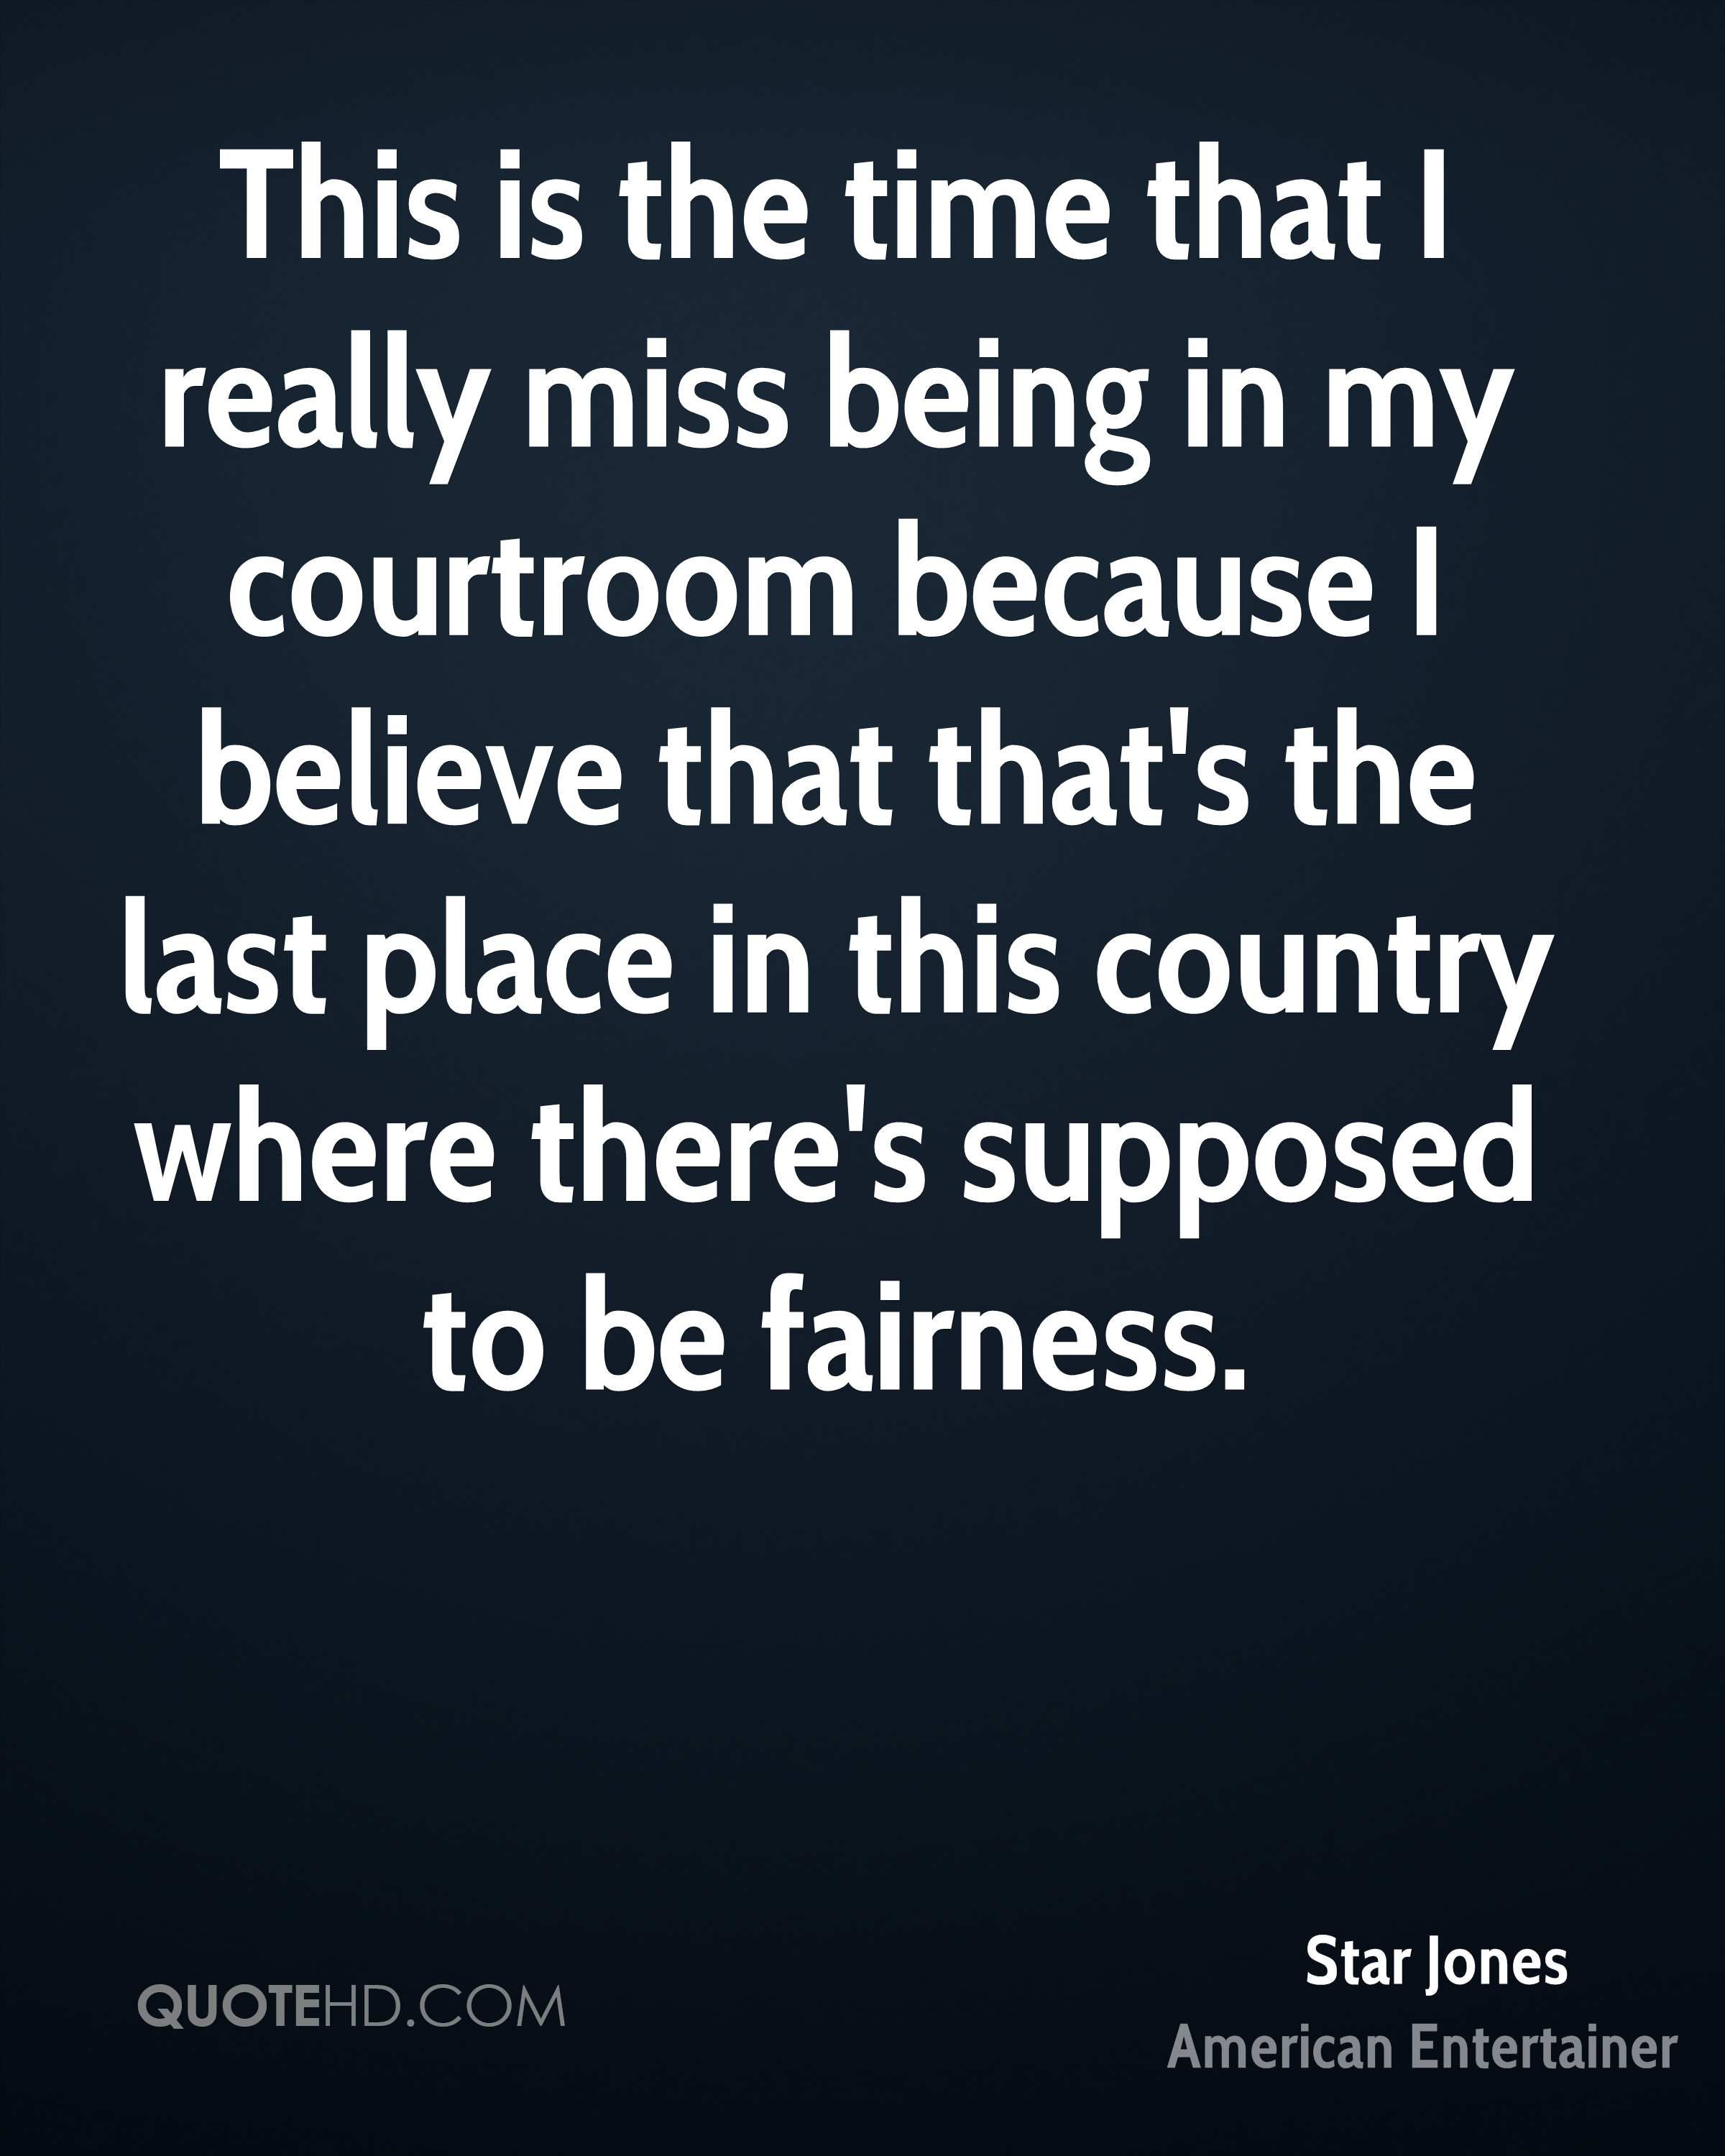 This is the time that I really miss being in my courtroom because I believe that that's the last place in this country where there's supposed to be fairness.